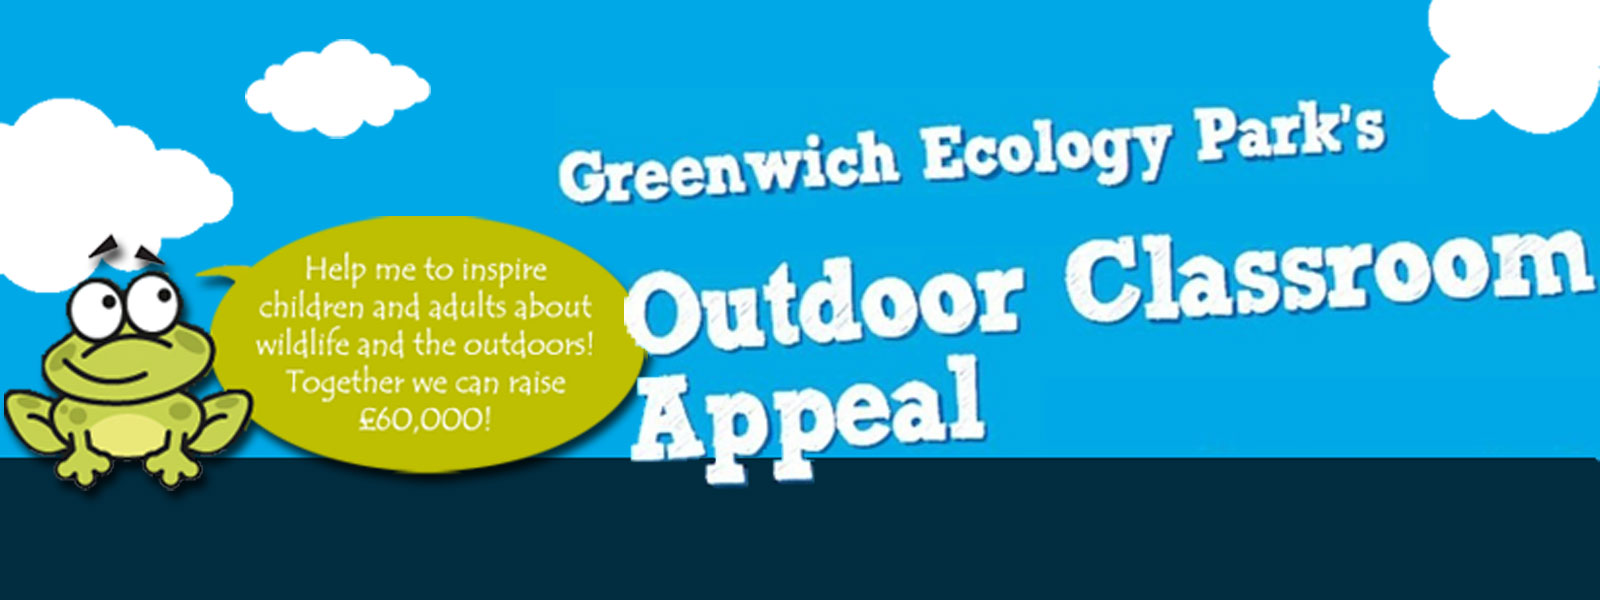 Greenwich Ecology Park Outdoor Classroom Appeal